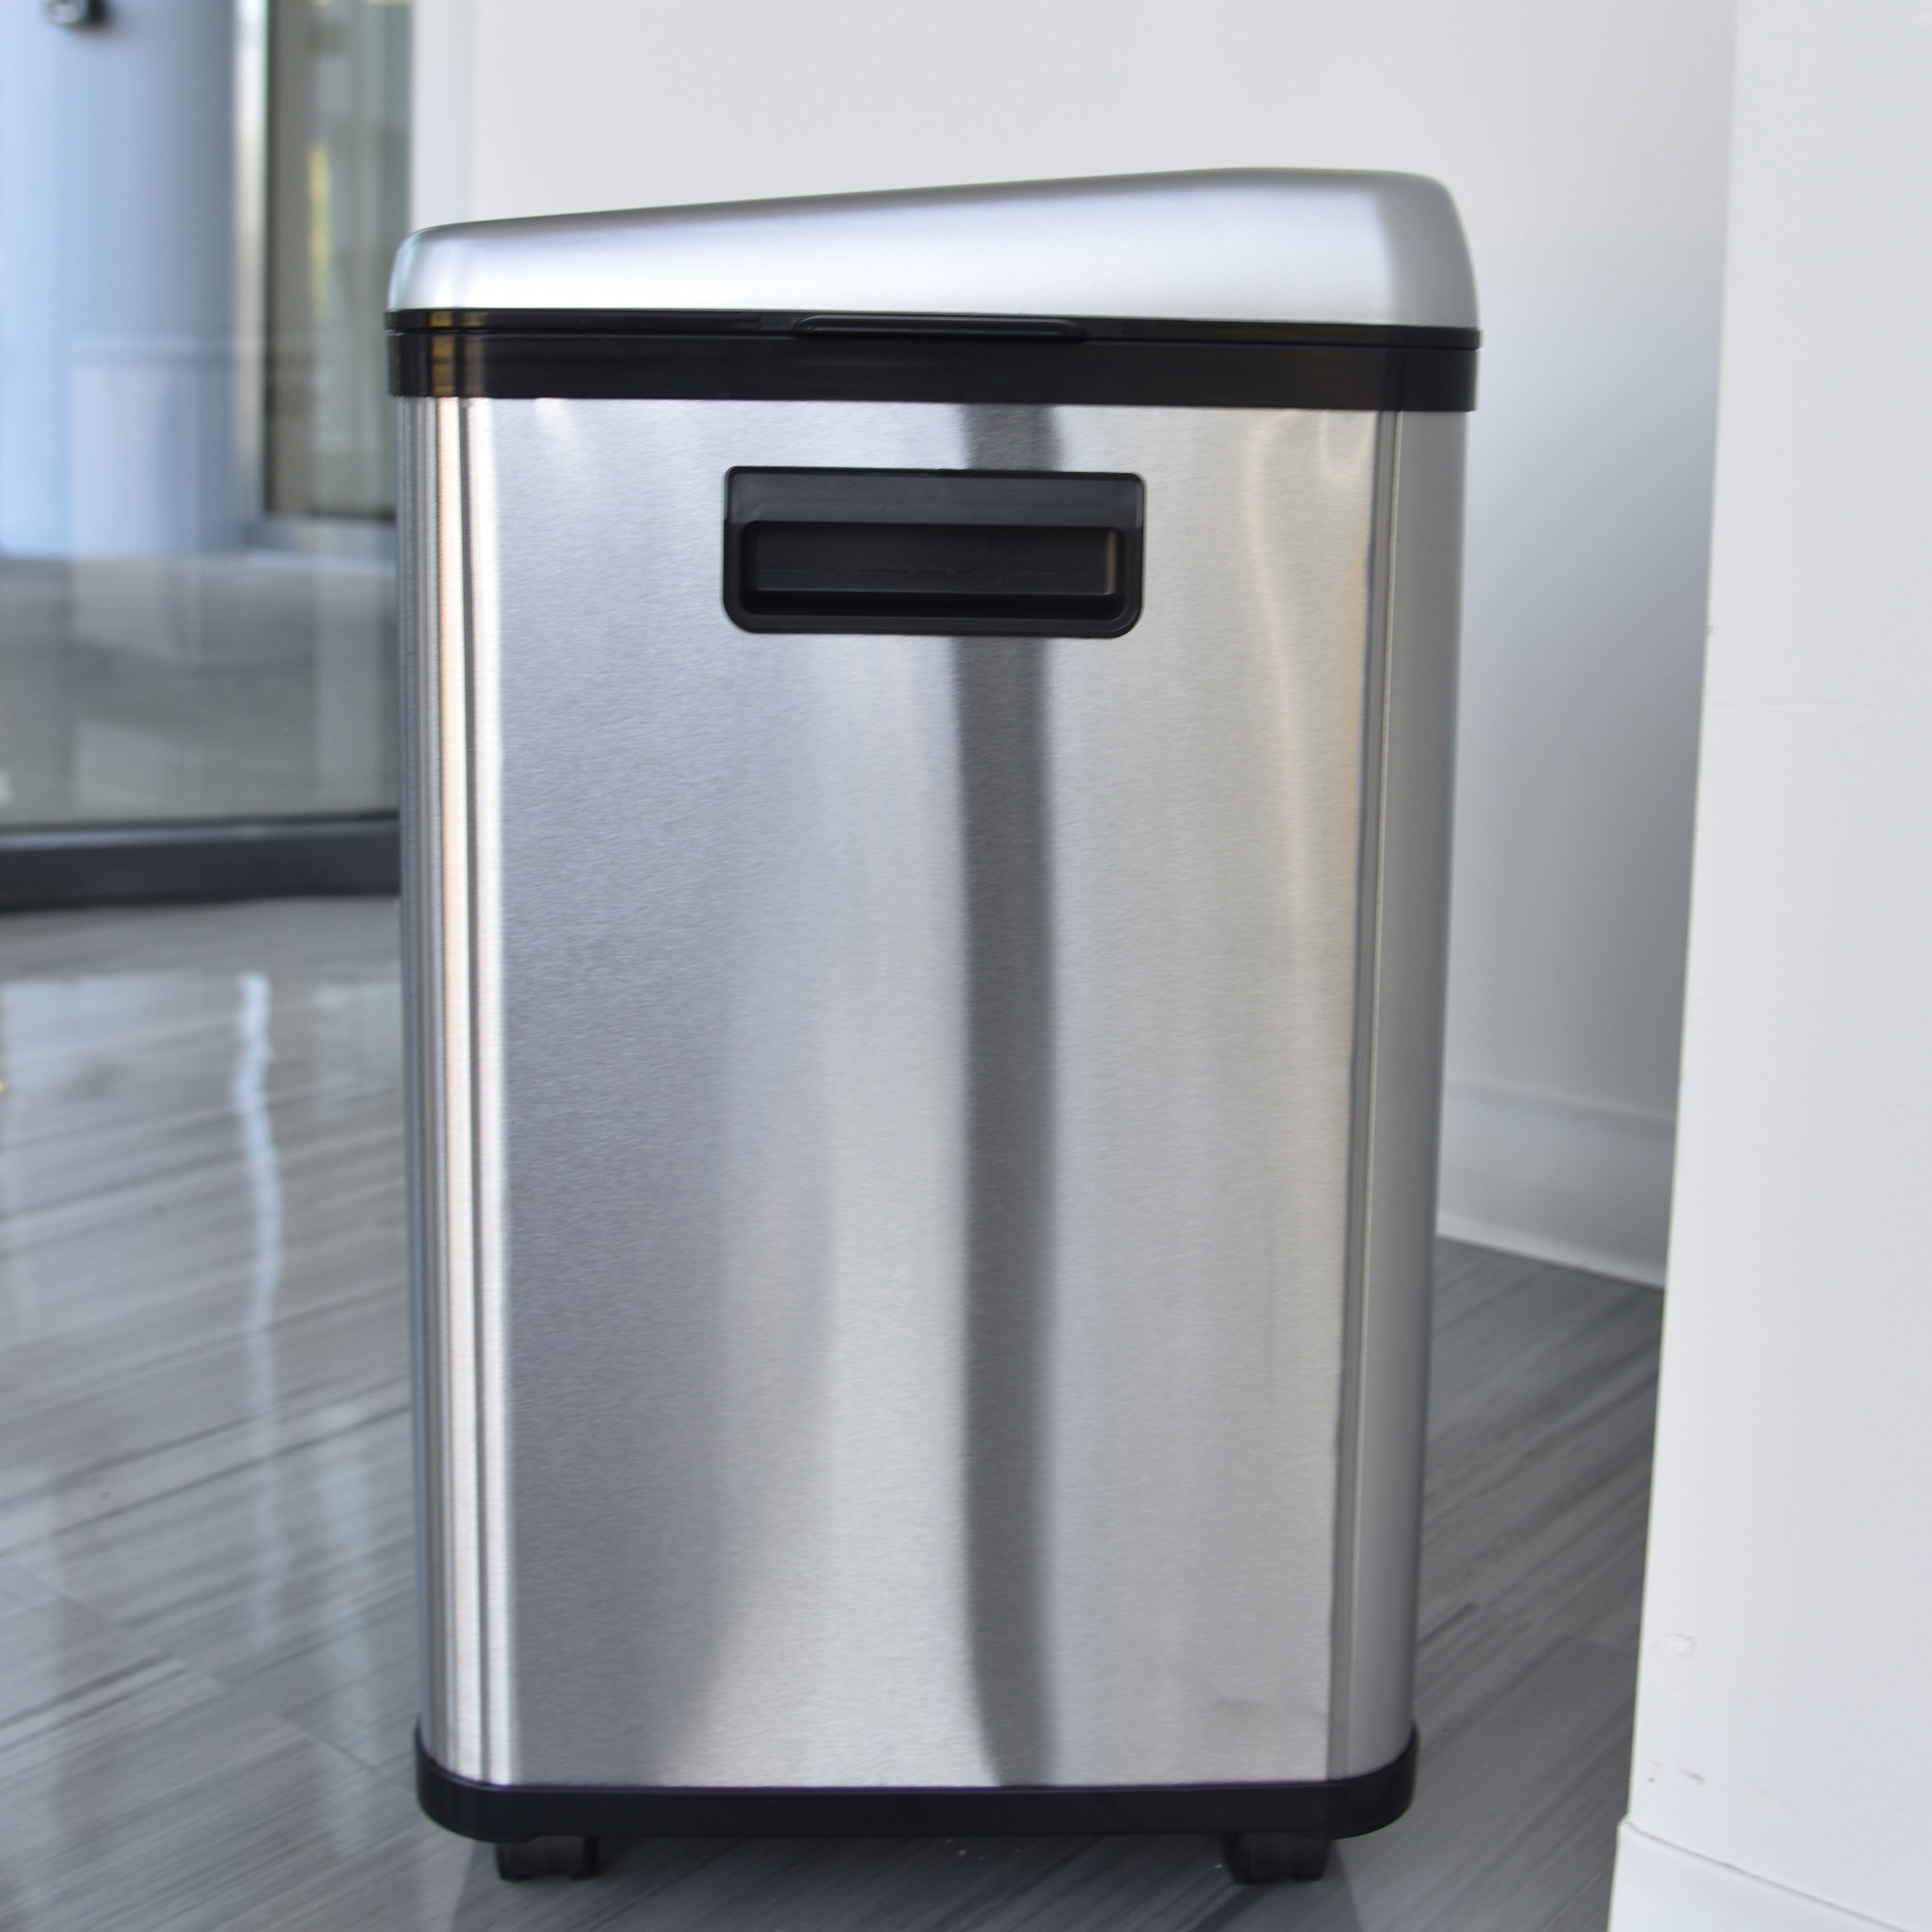 Stainless Steel Recycling Bins Halo 16 Gallon Dual Compartment Stainless Steel Sensor Recycle Bin Trash Can